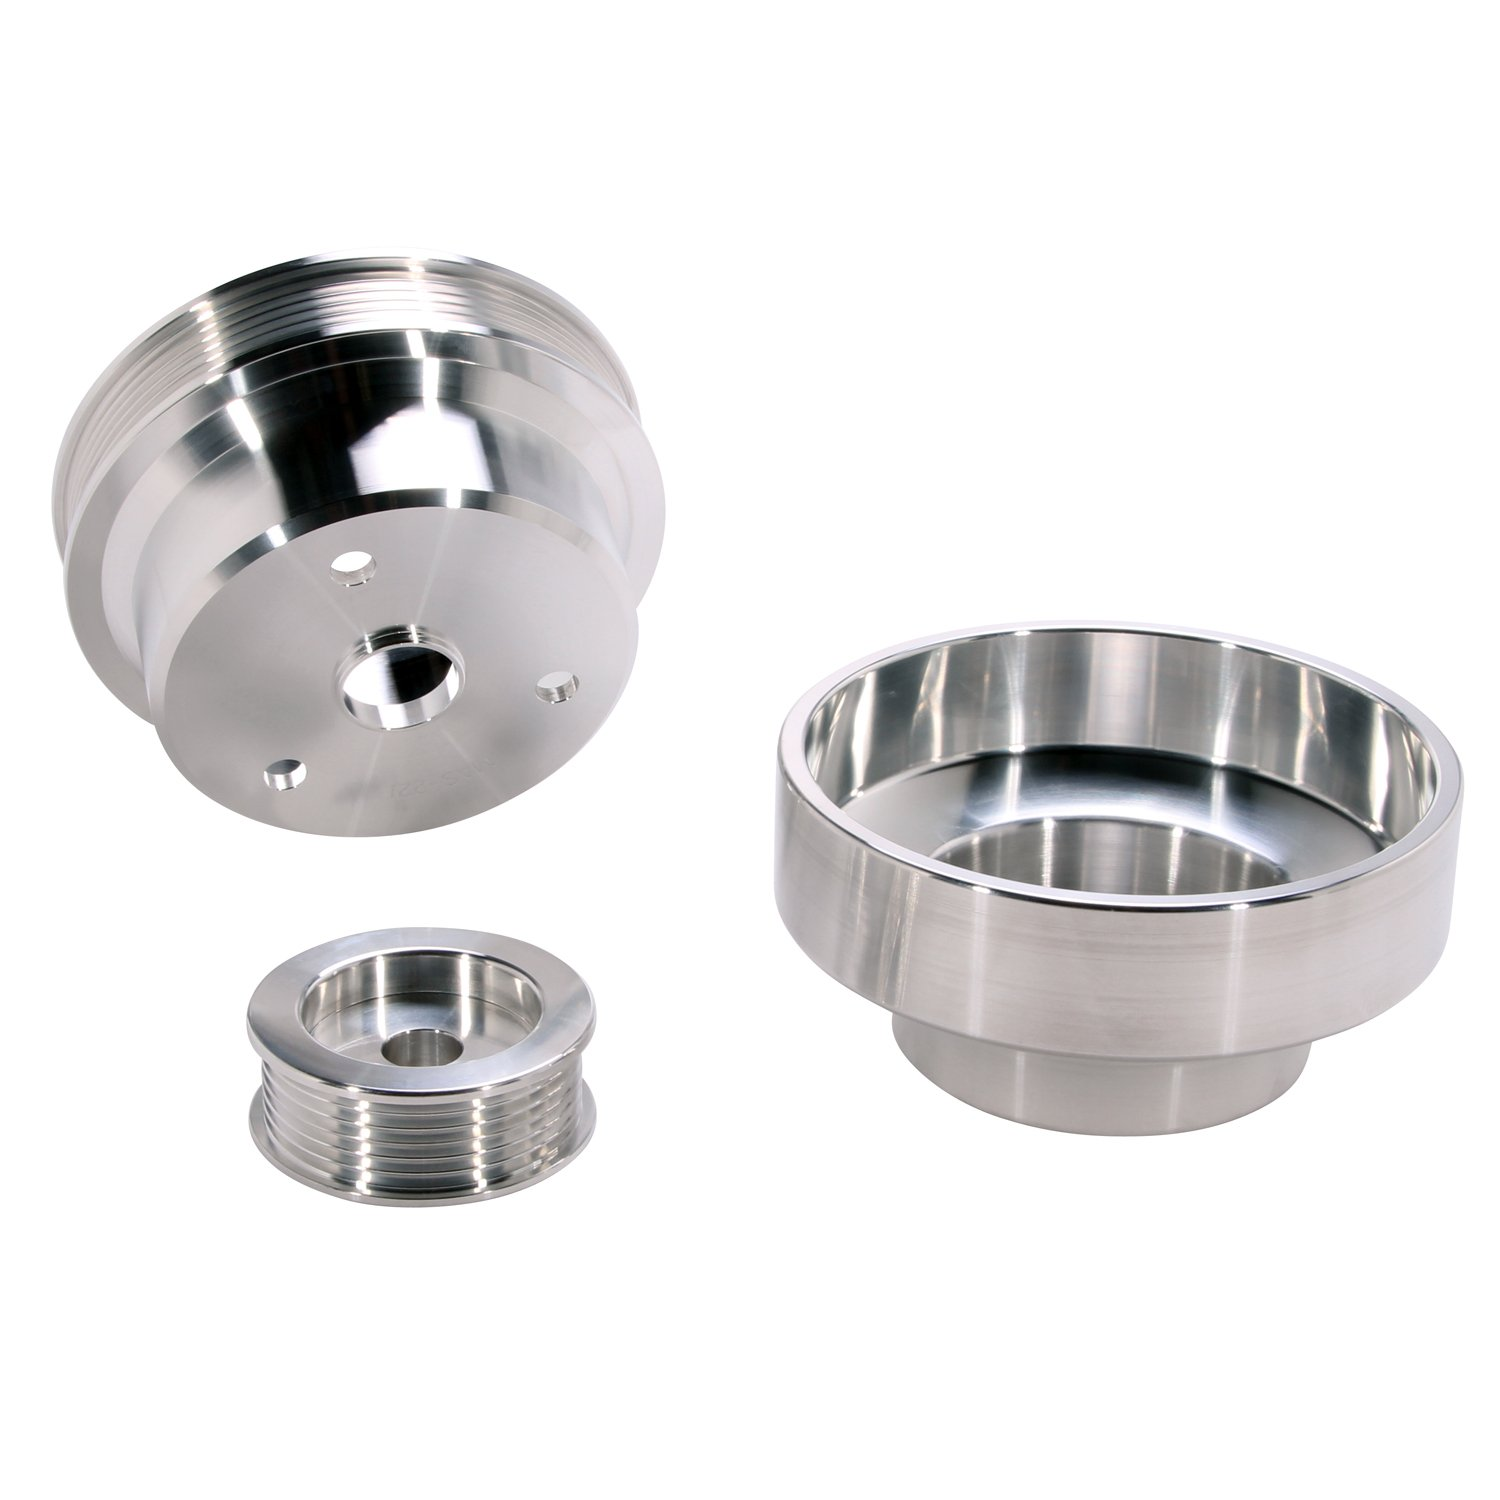 BBK 1603 Underdrive Pulley Kit for GM Truck 4.3/5.0/5.7L - 3 Piece CNC Machined Aluminum by BBK Performance (Image #3)